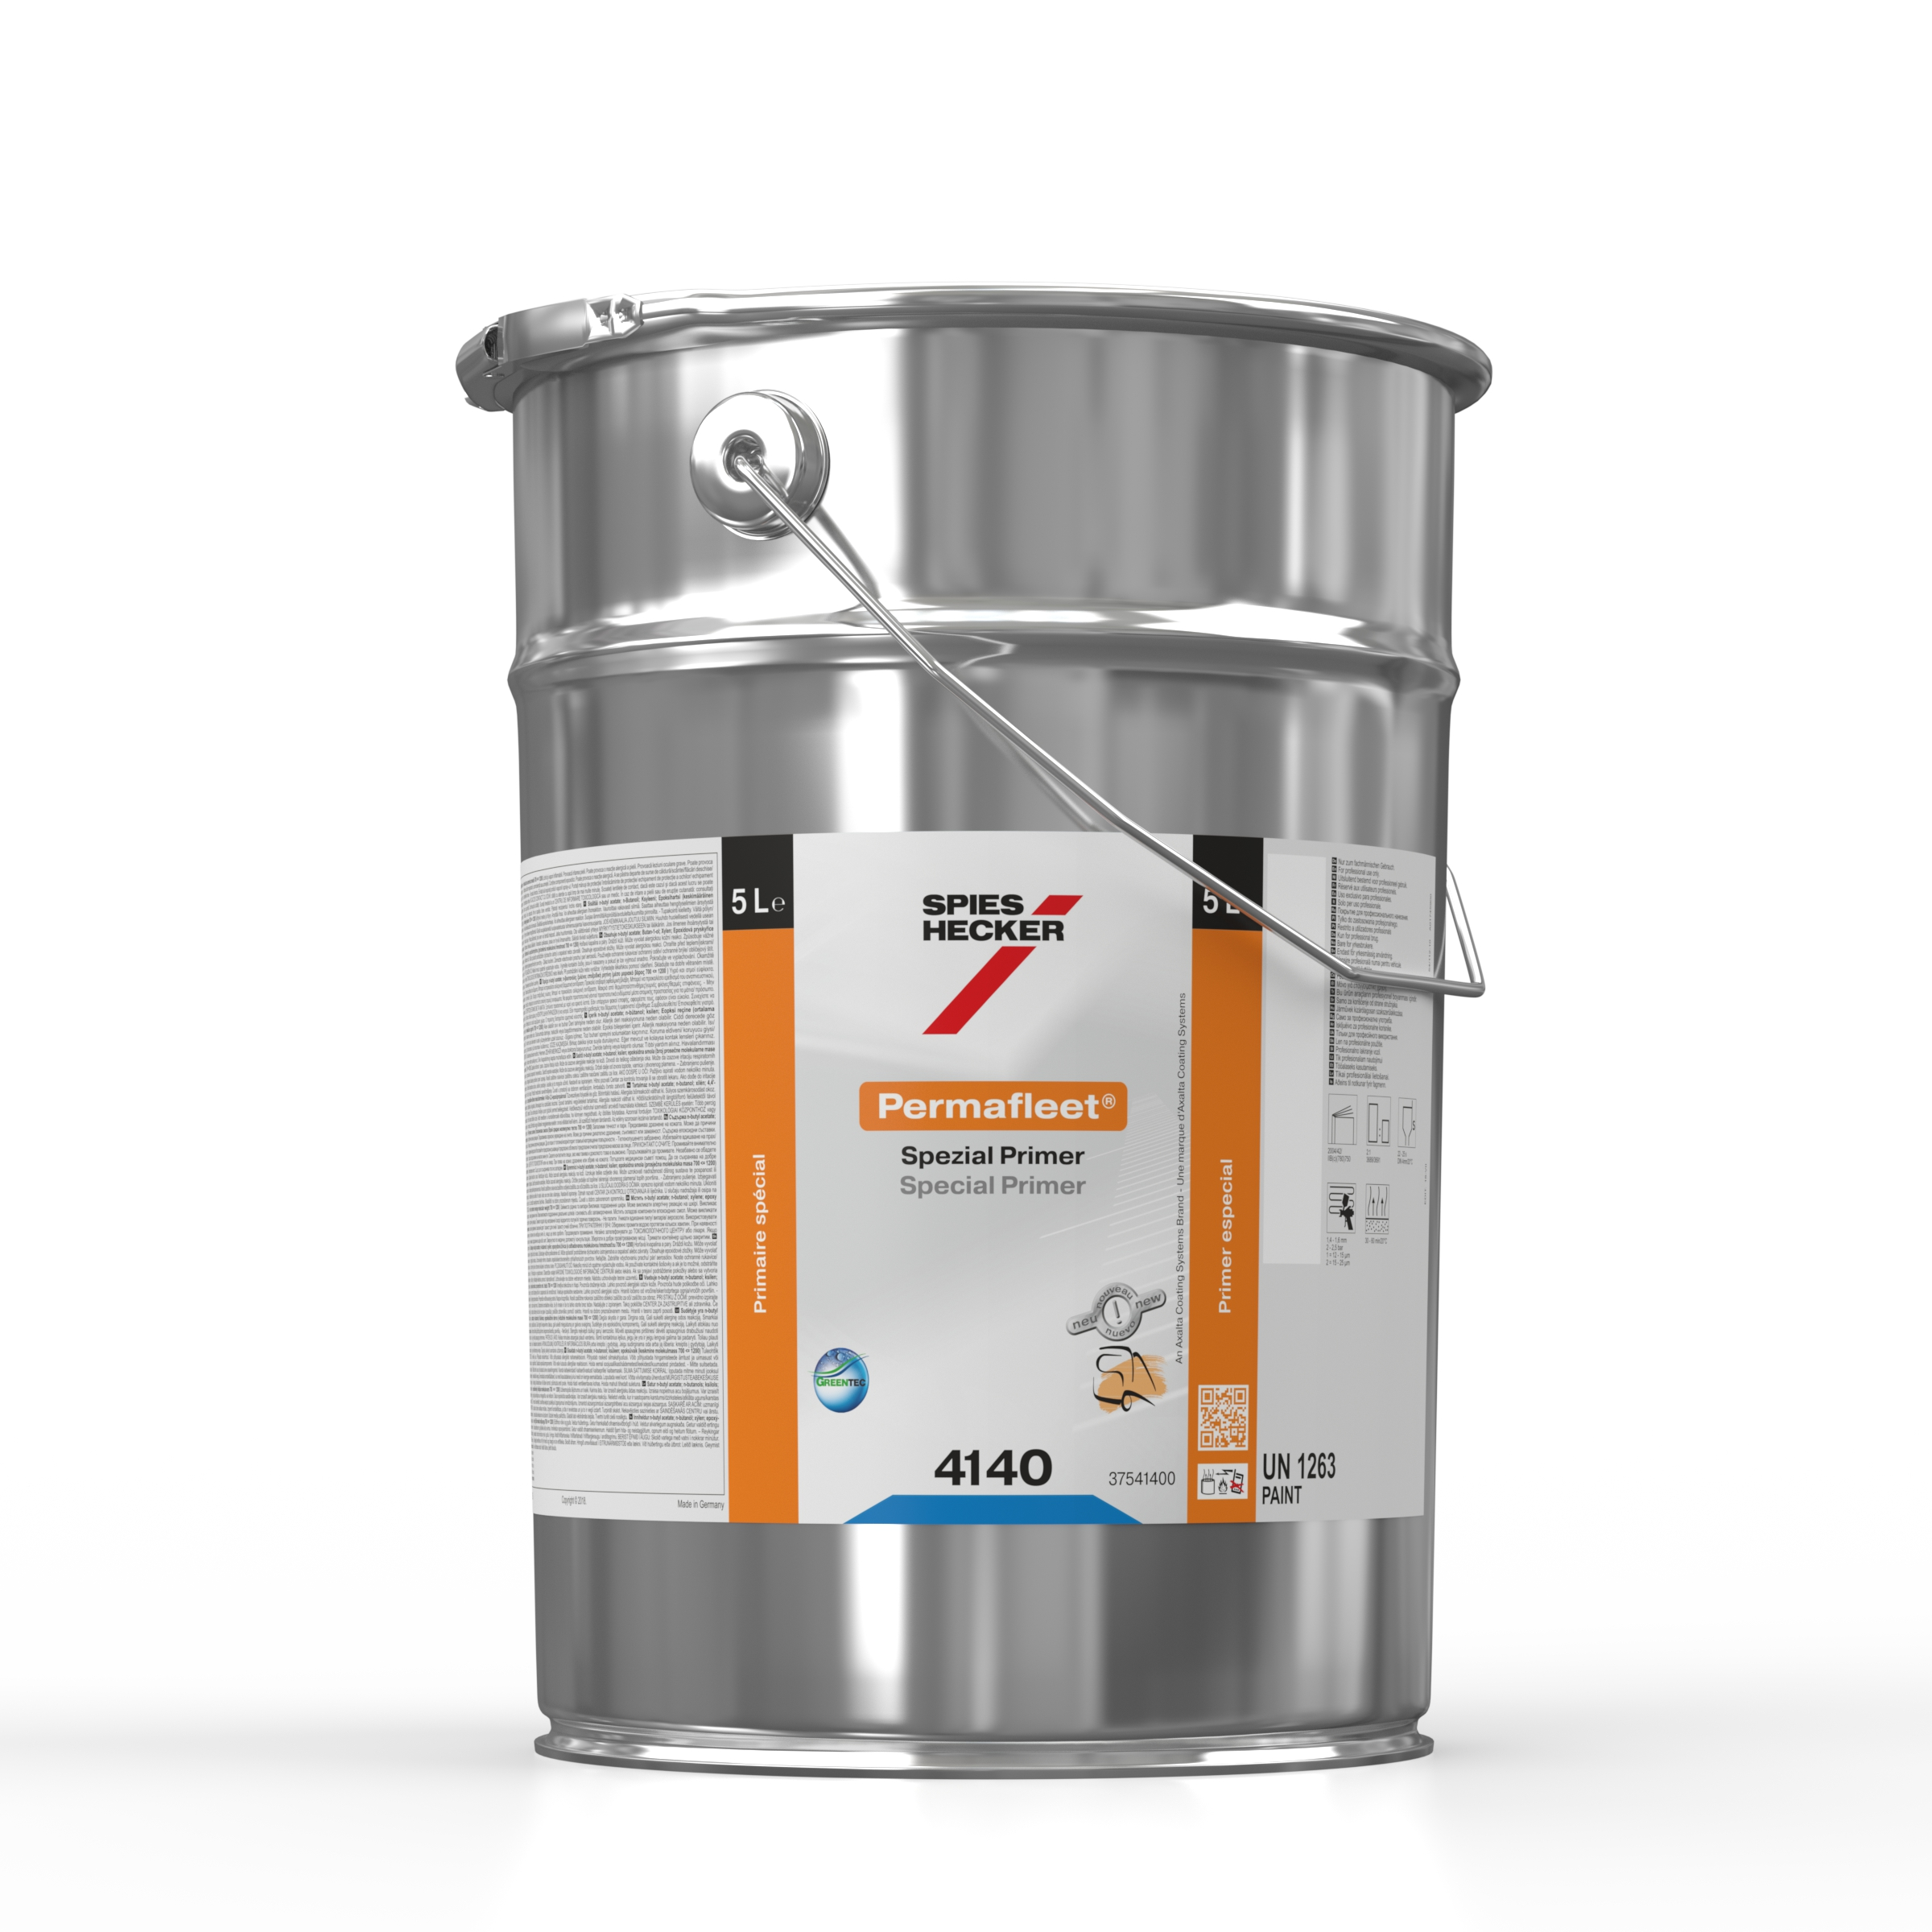 New zinc chromate-free wash primer from Spies Hecker